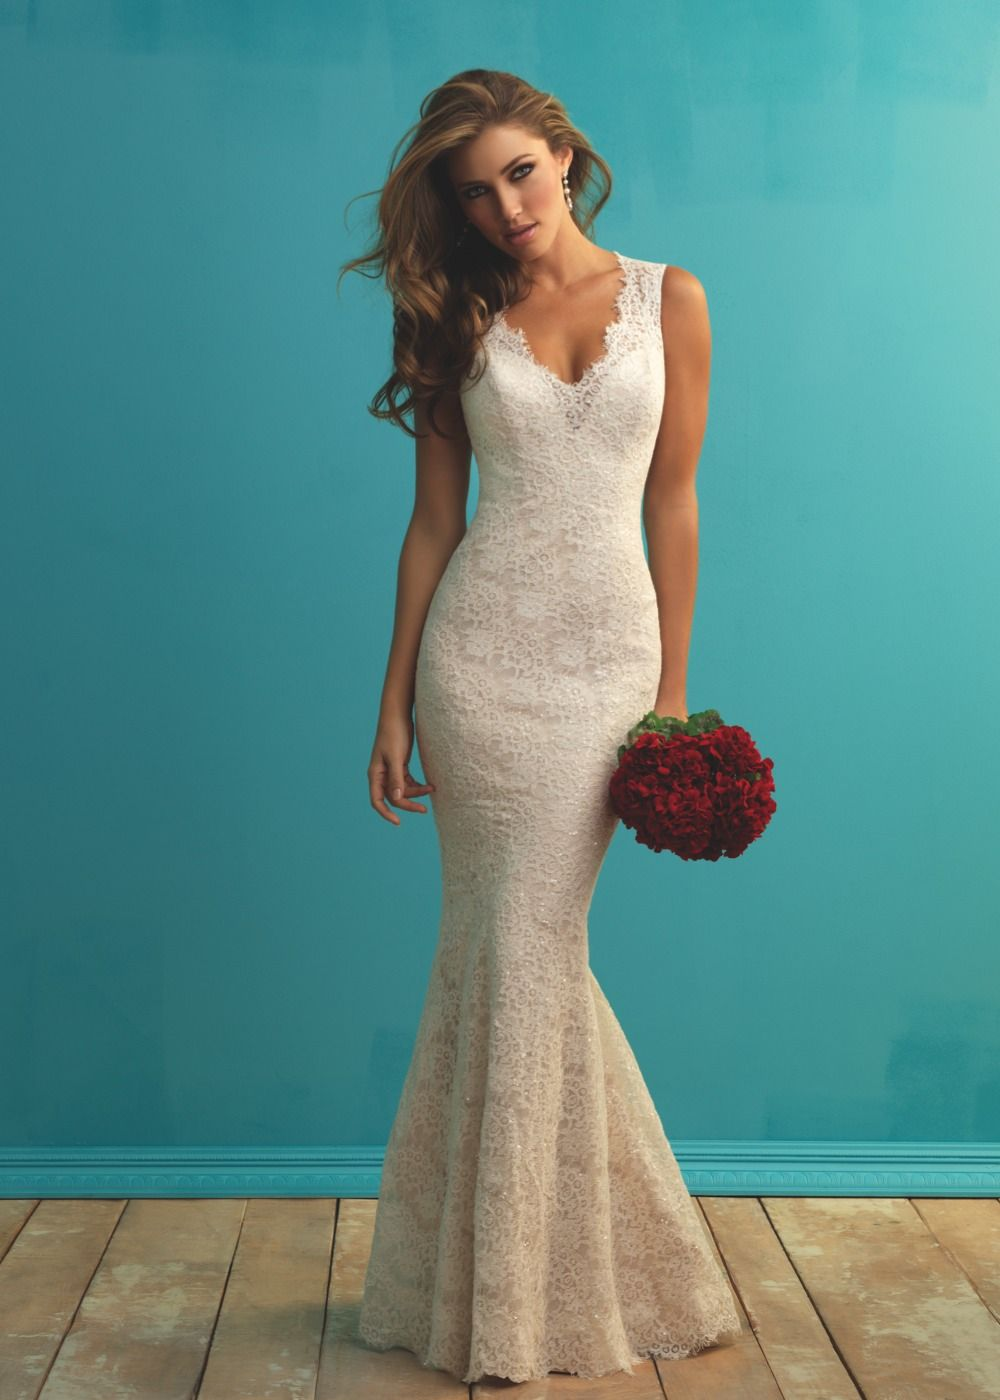 6 gorgeous fishtail wedding dresses inspired by Michelle Keegan ...